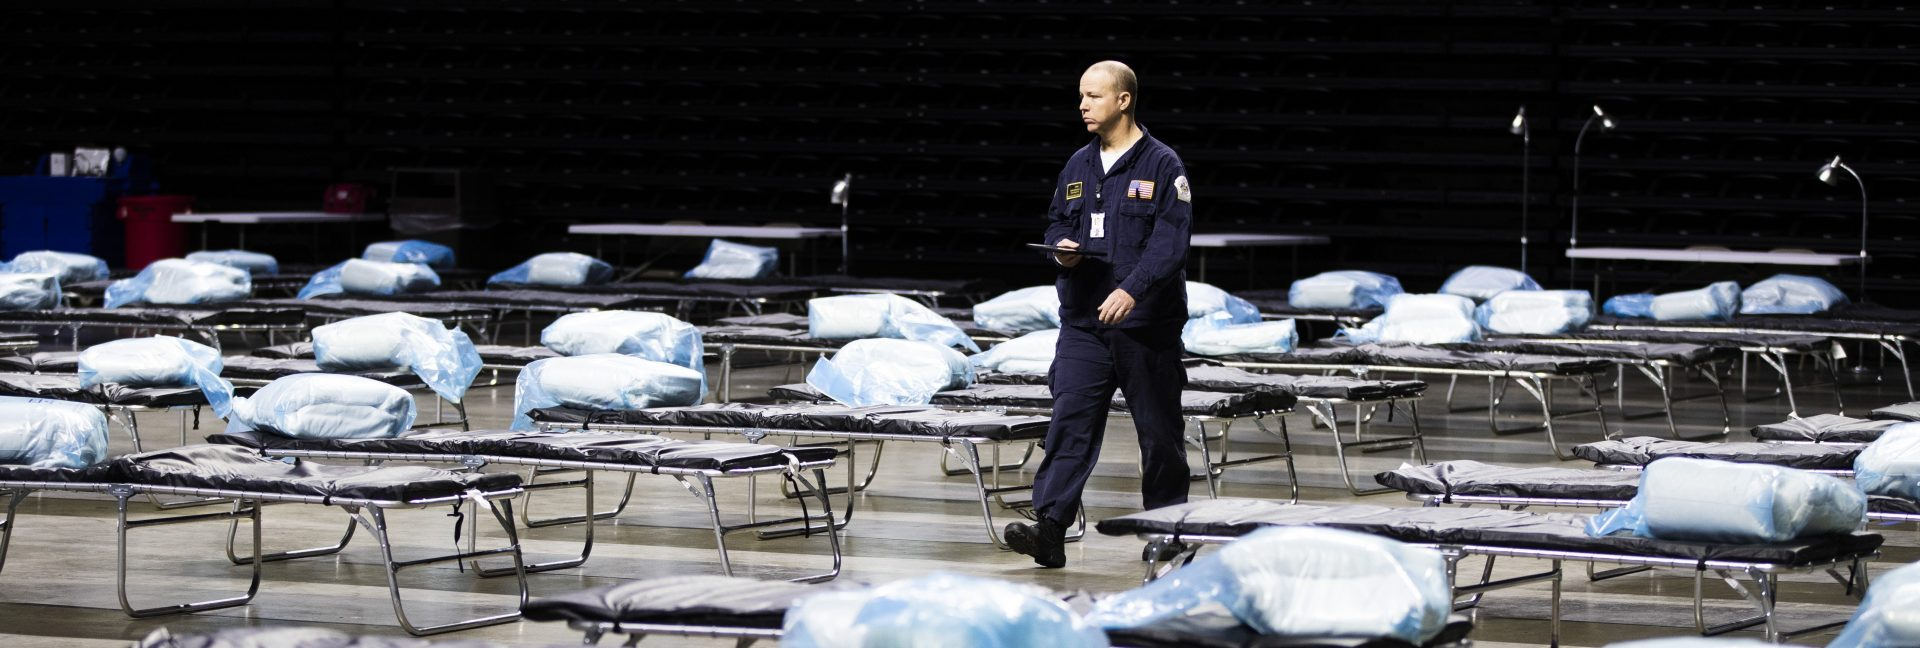 Pennsylvania Task Force 1 member Greg Rogalski walks amongst the beds of a Federal Medical Station for hospital surge capacity set up at Temple University's Liacouras Center in Philadelphia, Monday, March 30, 2020.